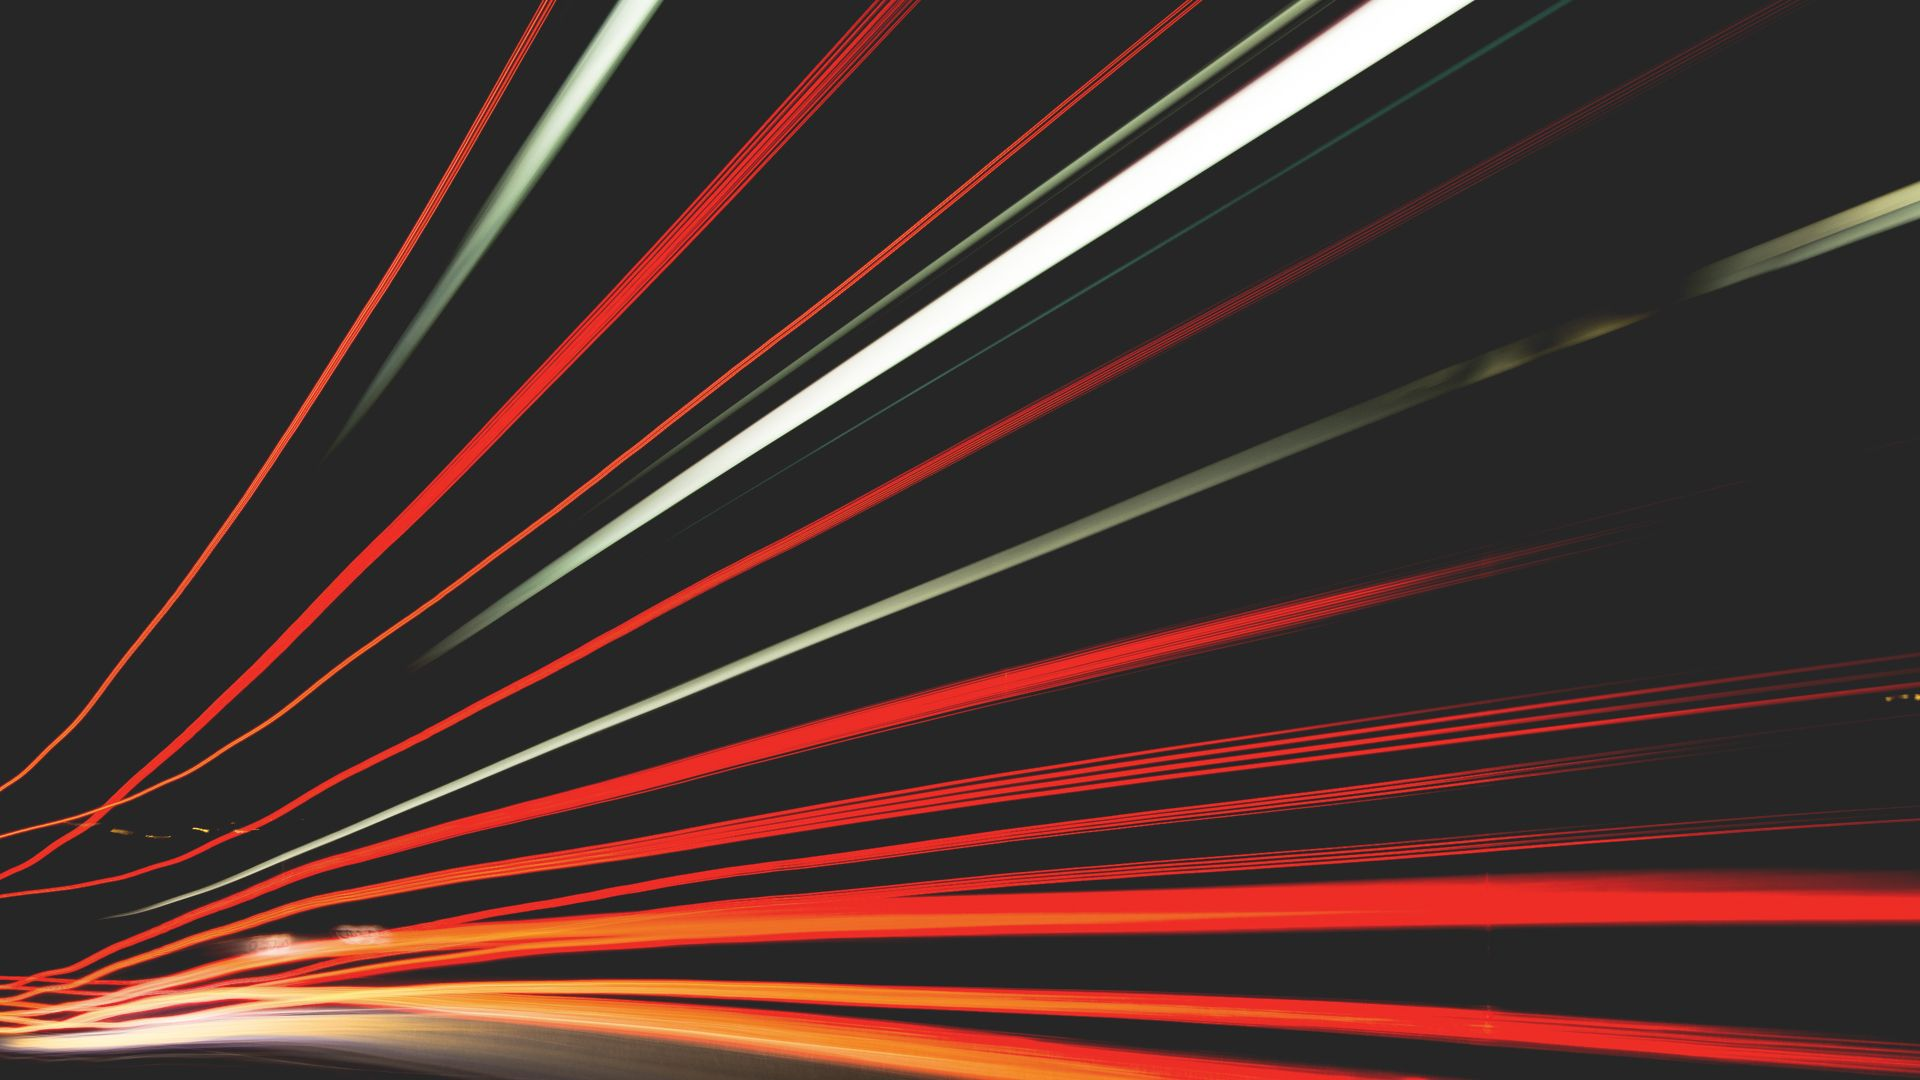 Digital transformation creates speed